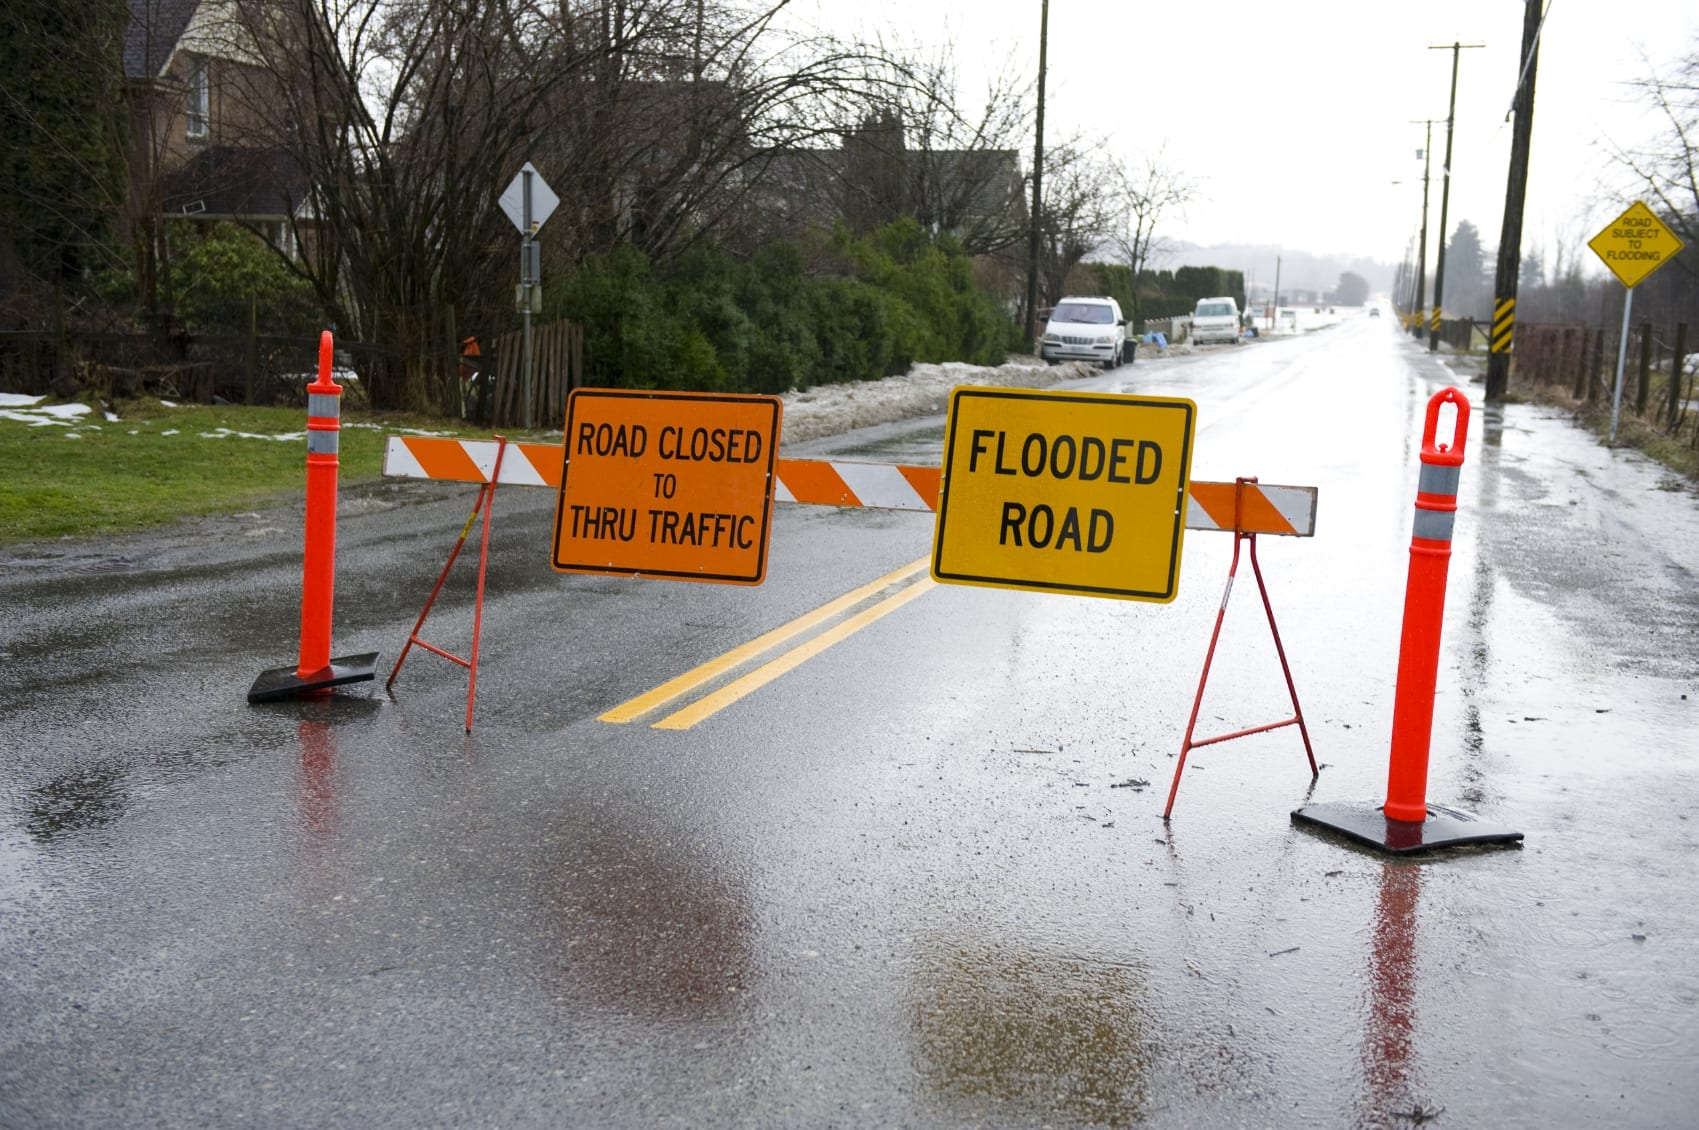 Flooded Road Warning Sign Stock Photo